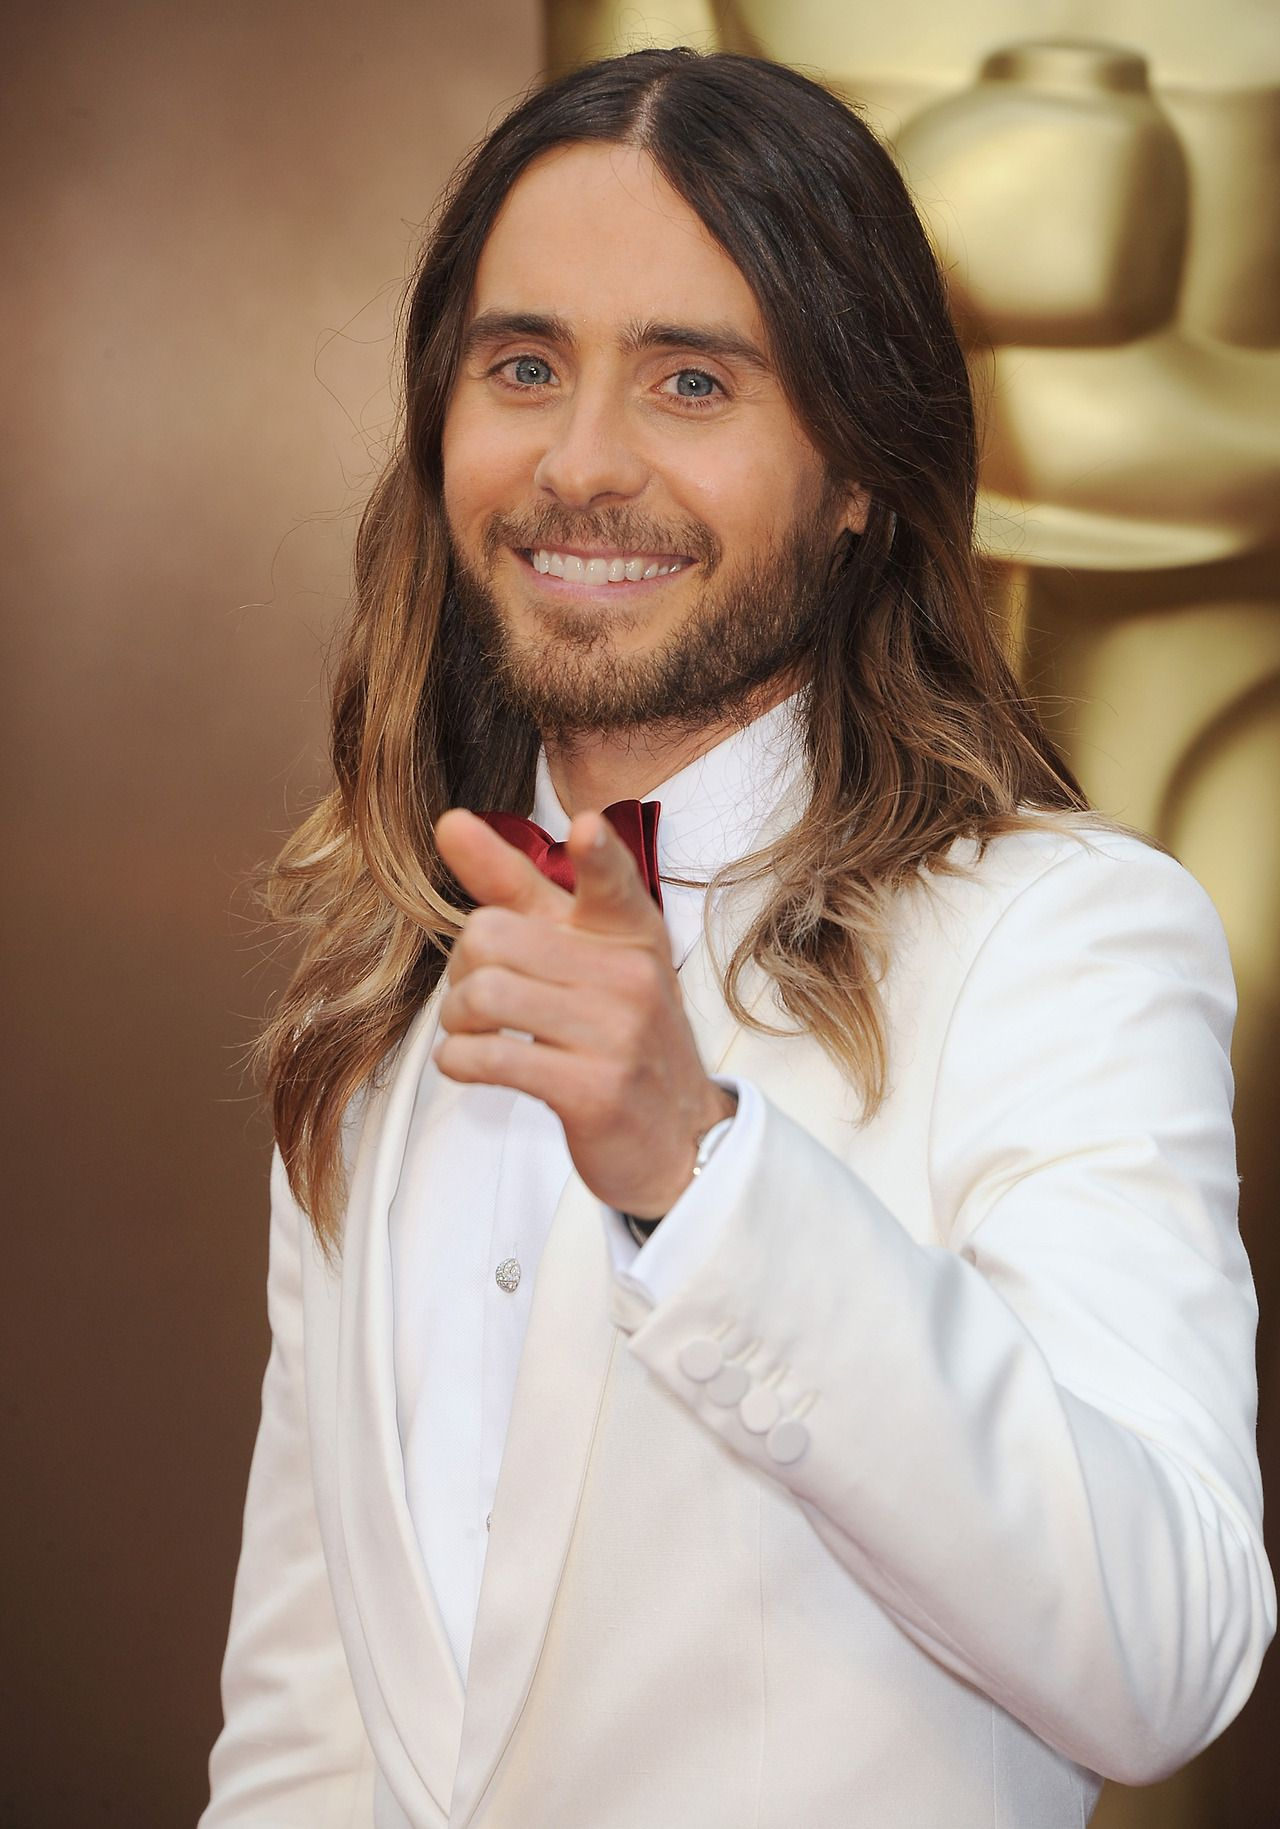 jolieing:   Jared Leto attends the Oscars held at Hollywood & Highland Center on March 2, 2014 in Hollywood, California.